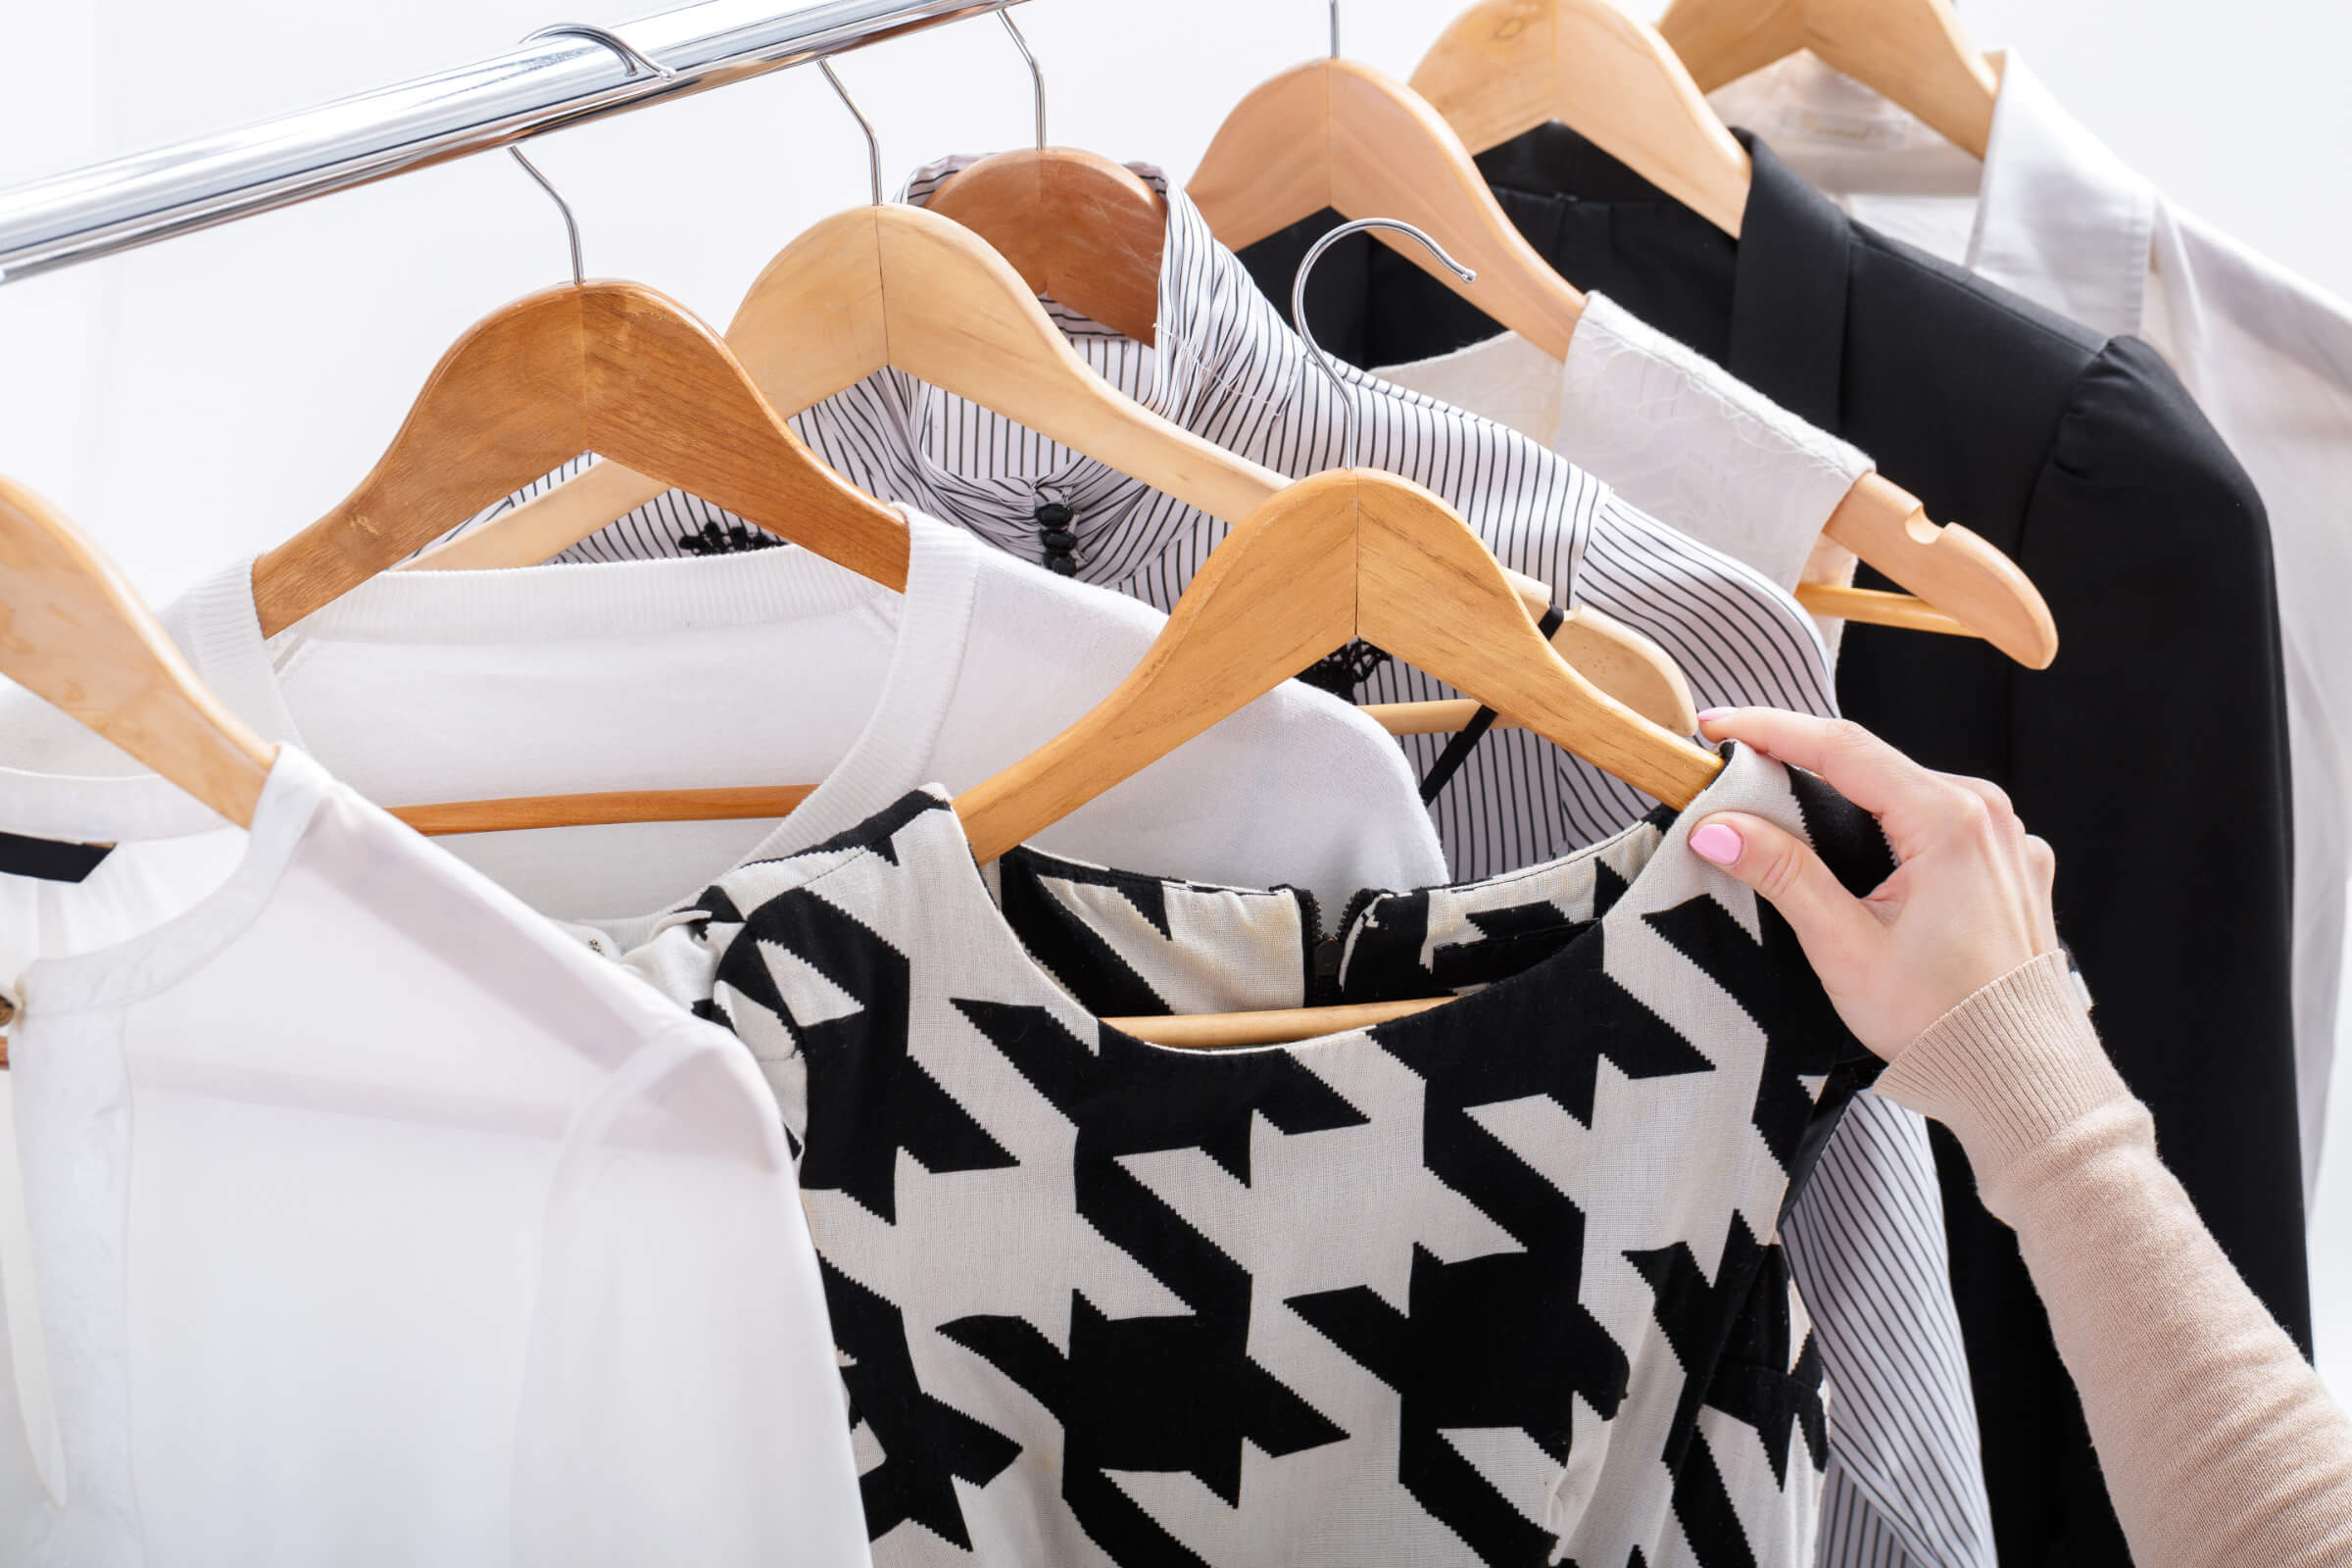 Woman Selecting Monochrome Houndstooth Dress From Rail - Always A Good Choice